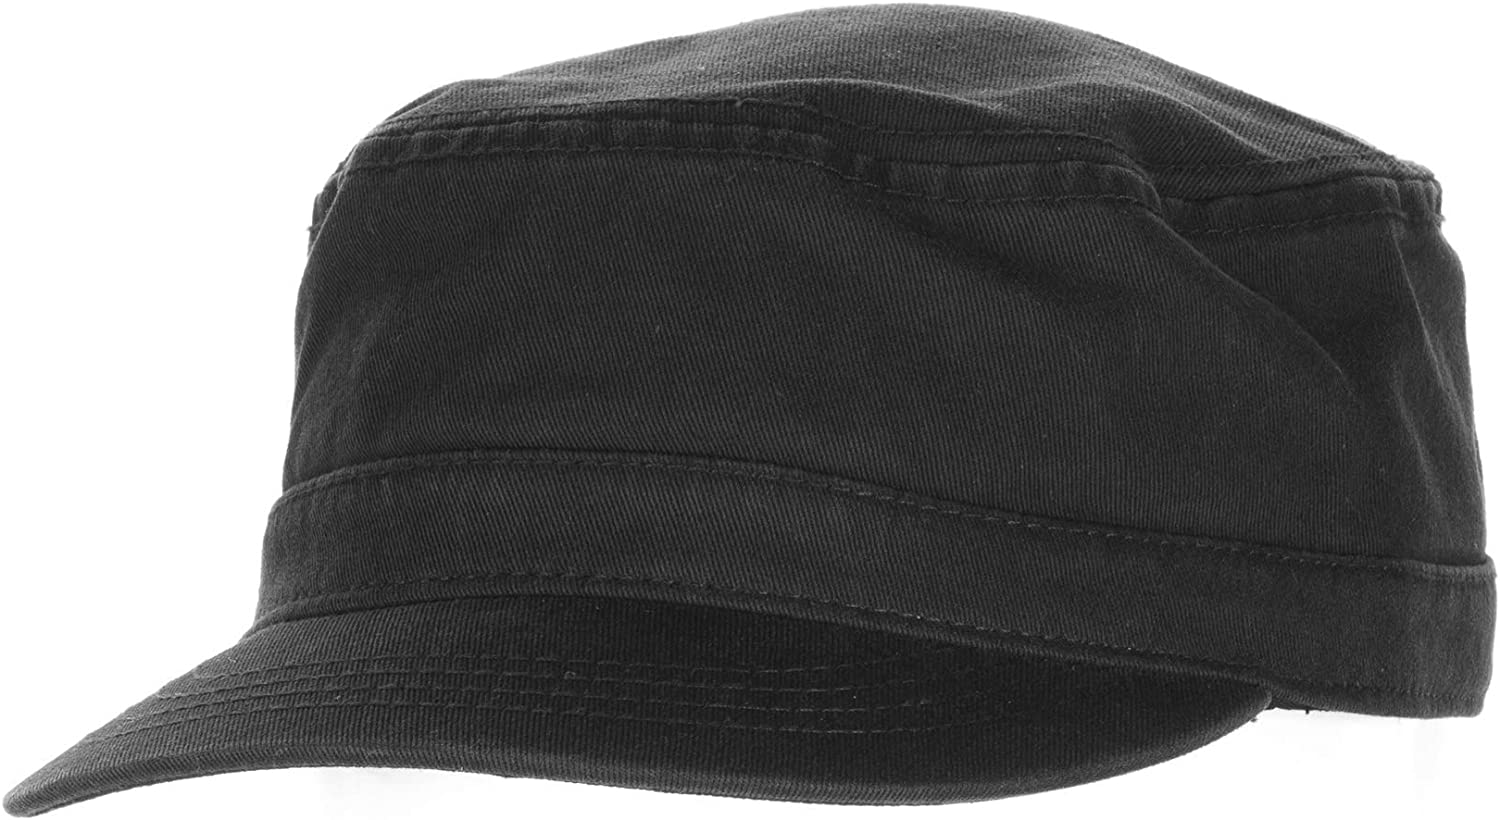 Chef Works Unisex Military Cap, Black, One Size